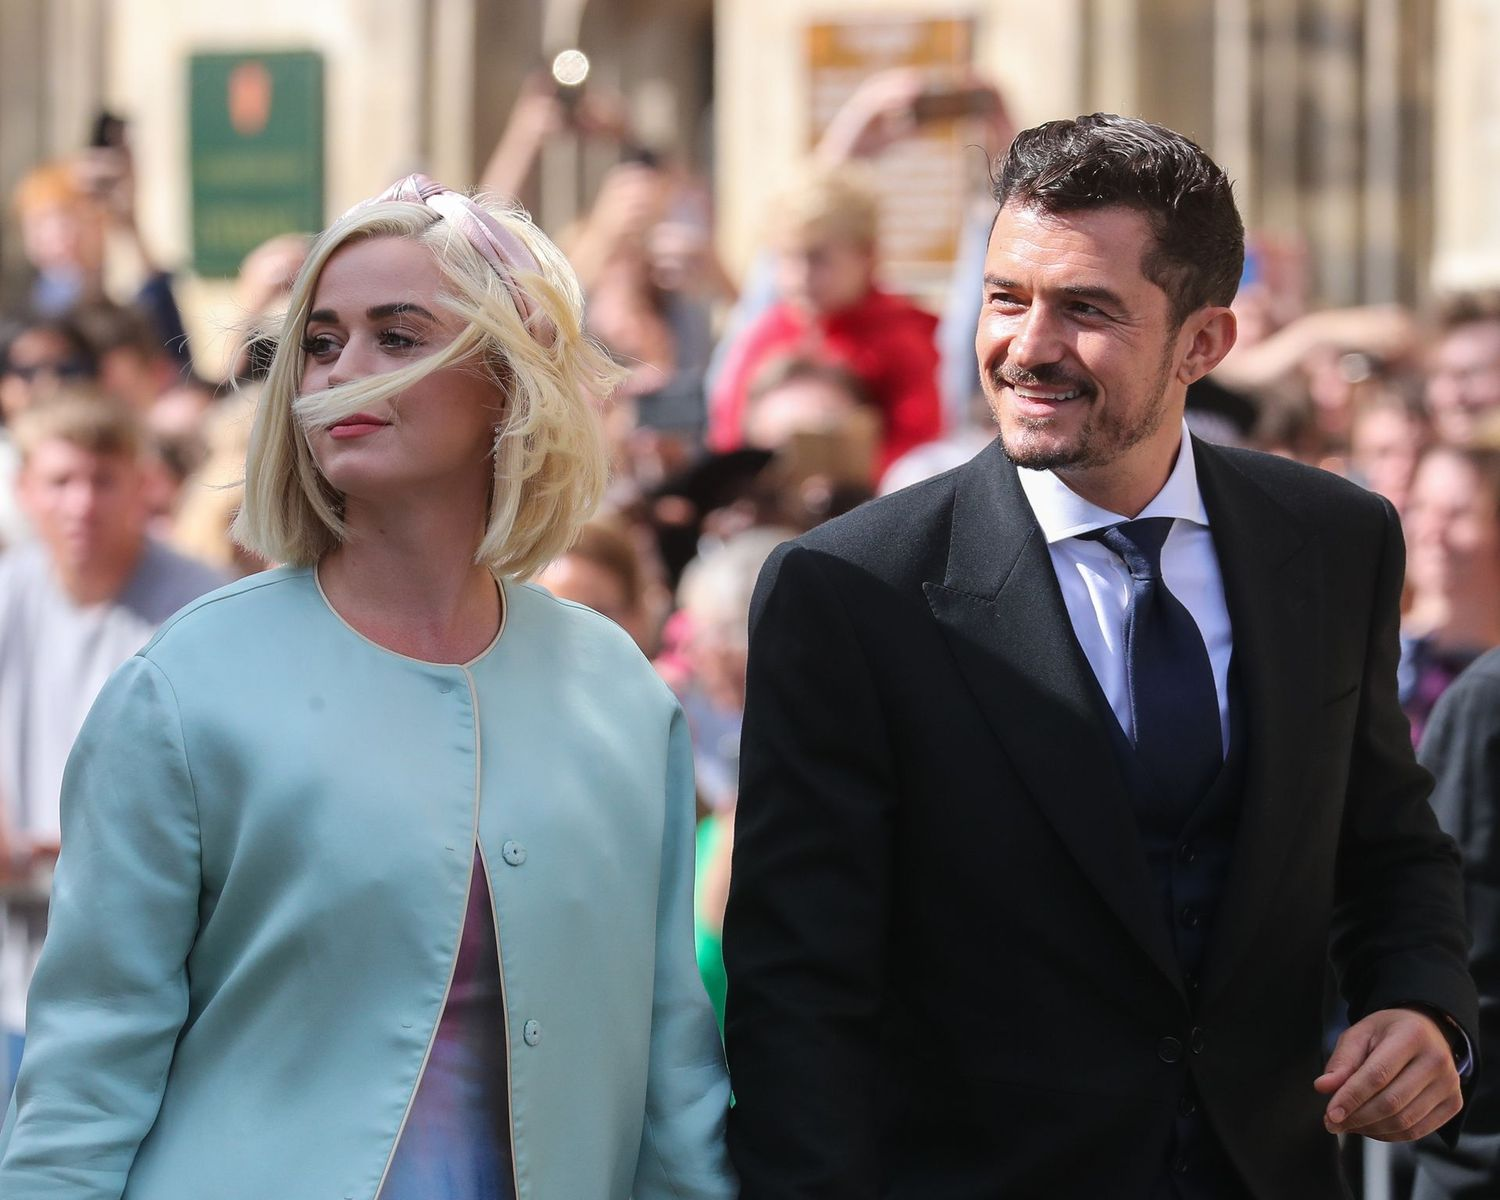 Katy Perry and Orlando Bloom at the wedding of Ellie Goulding and Caspar Jopling at York Minster Cathedral on August 31, 2019 | Photo: Getty Images